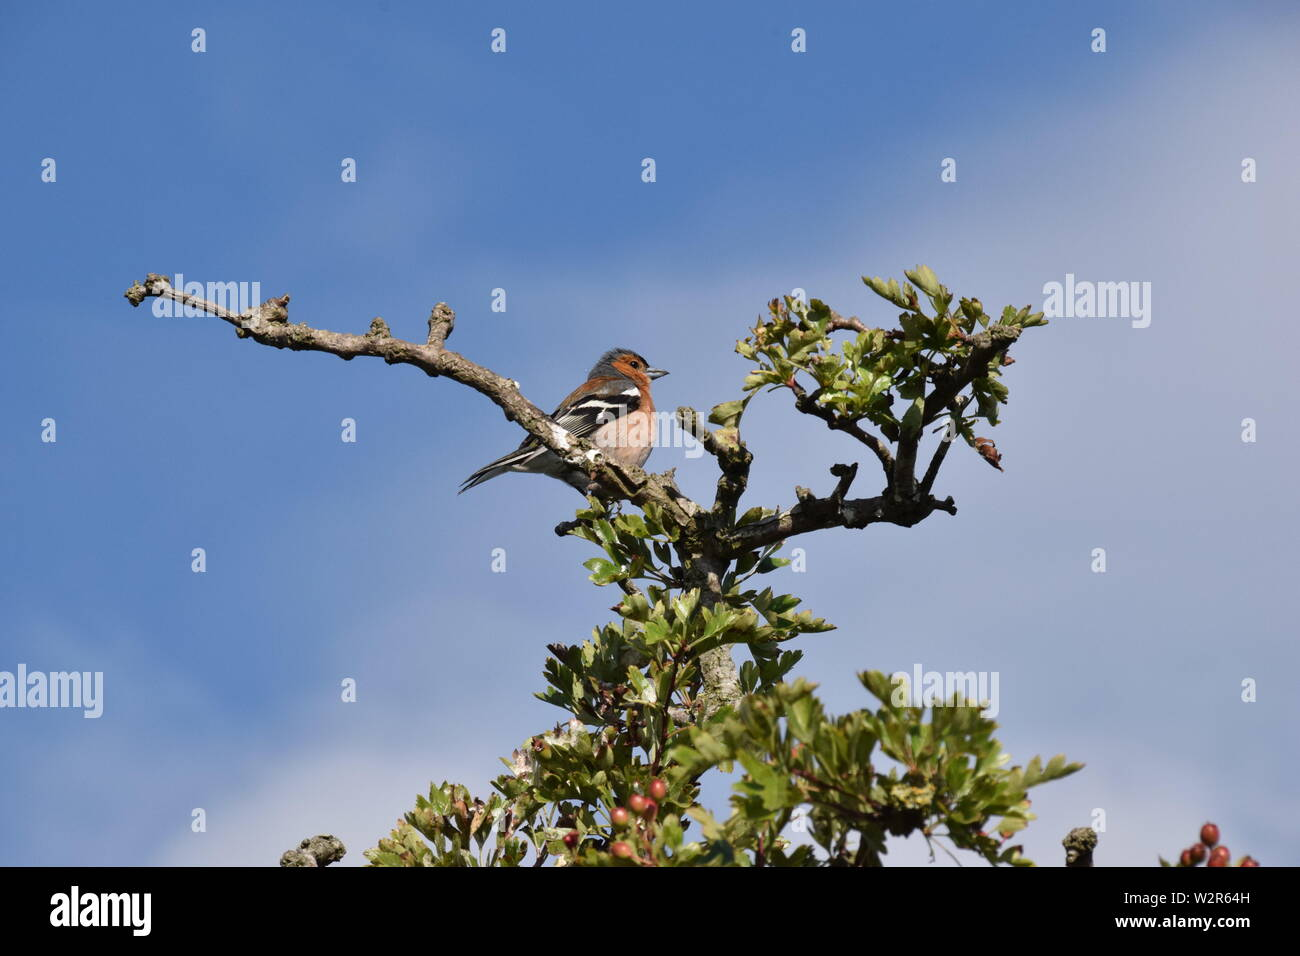 Chaffinch sitting at top of Hawthorn tree - Stock Image